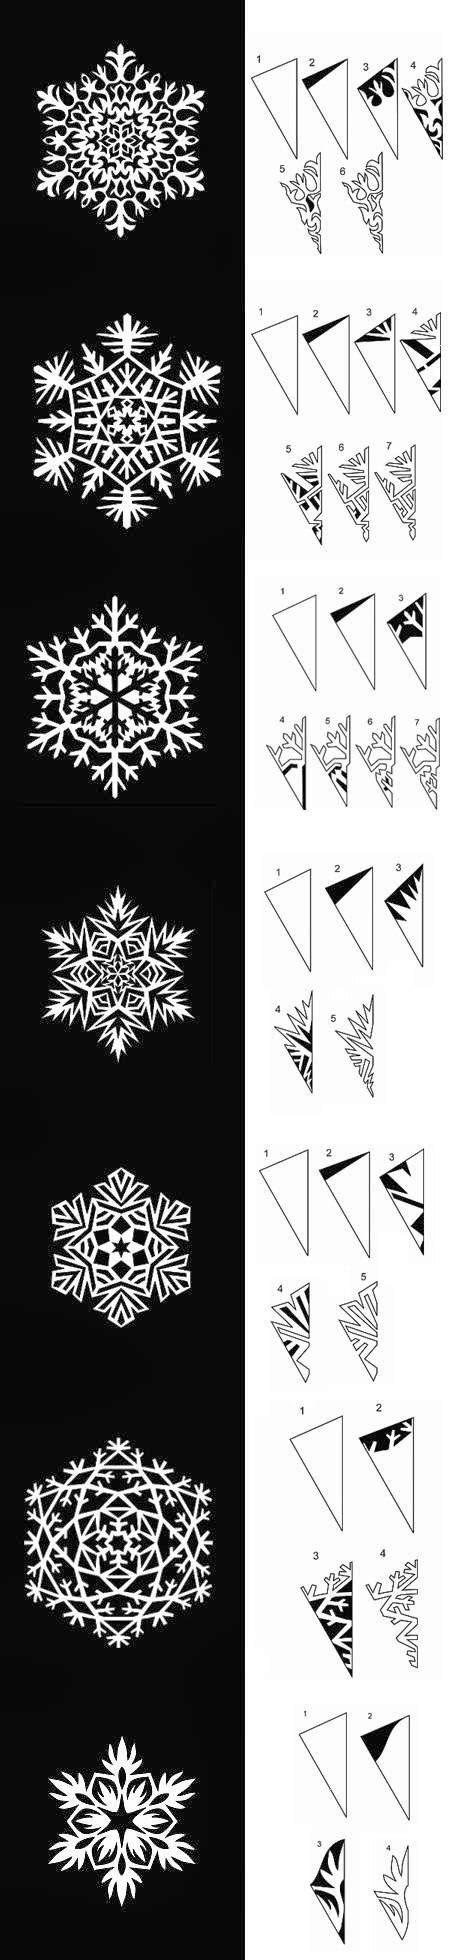 diy paper snowflakes templates diy paper snowflakes templates by hairstyle tutorials